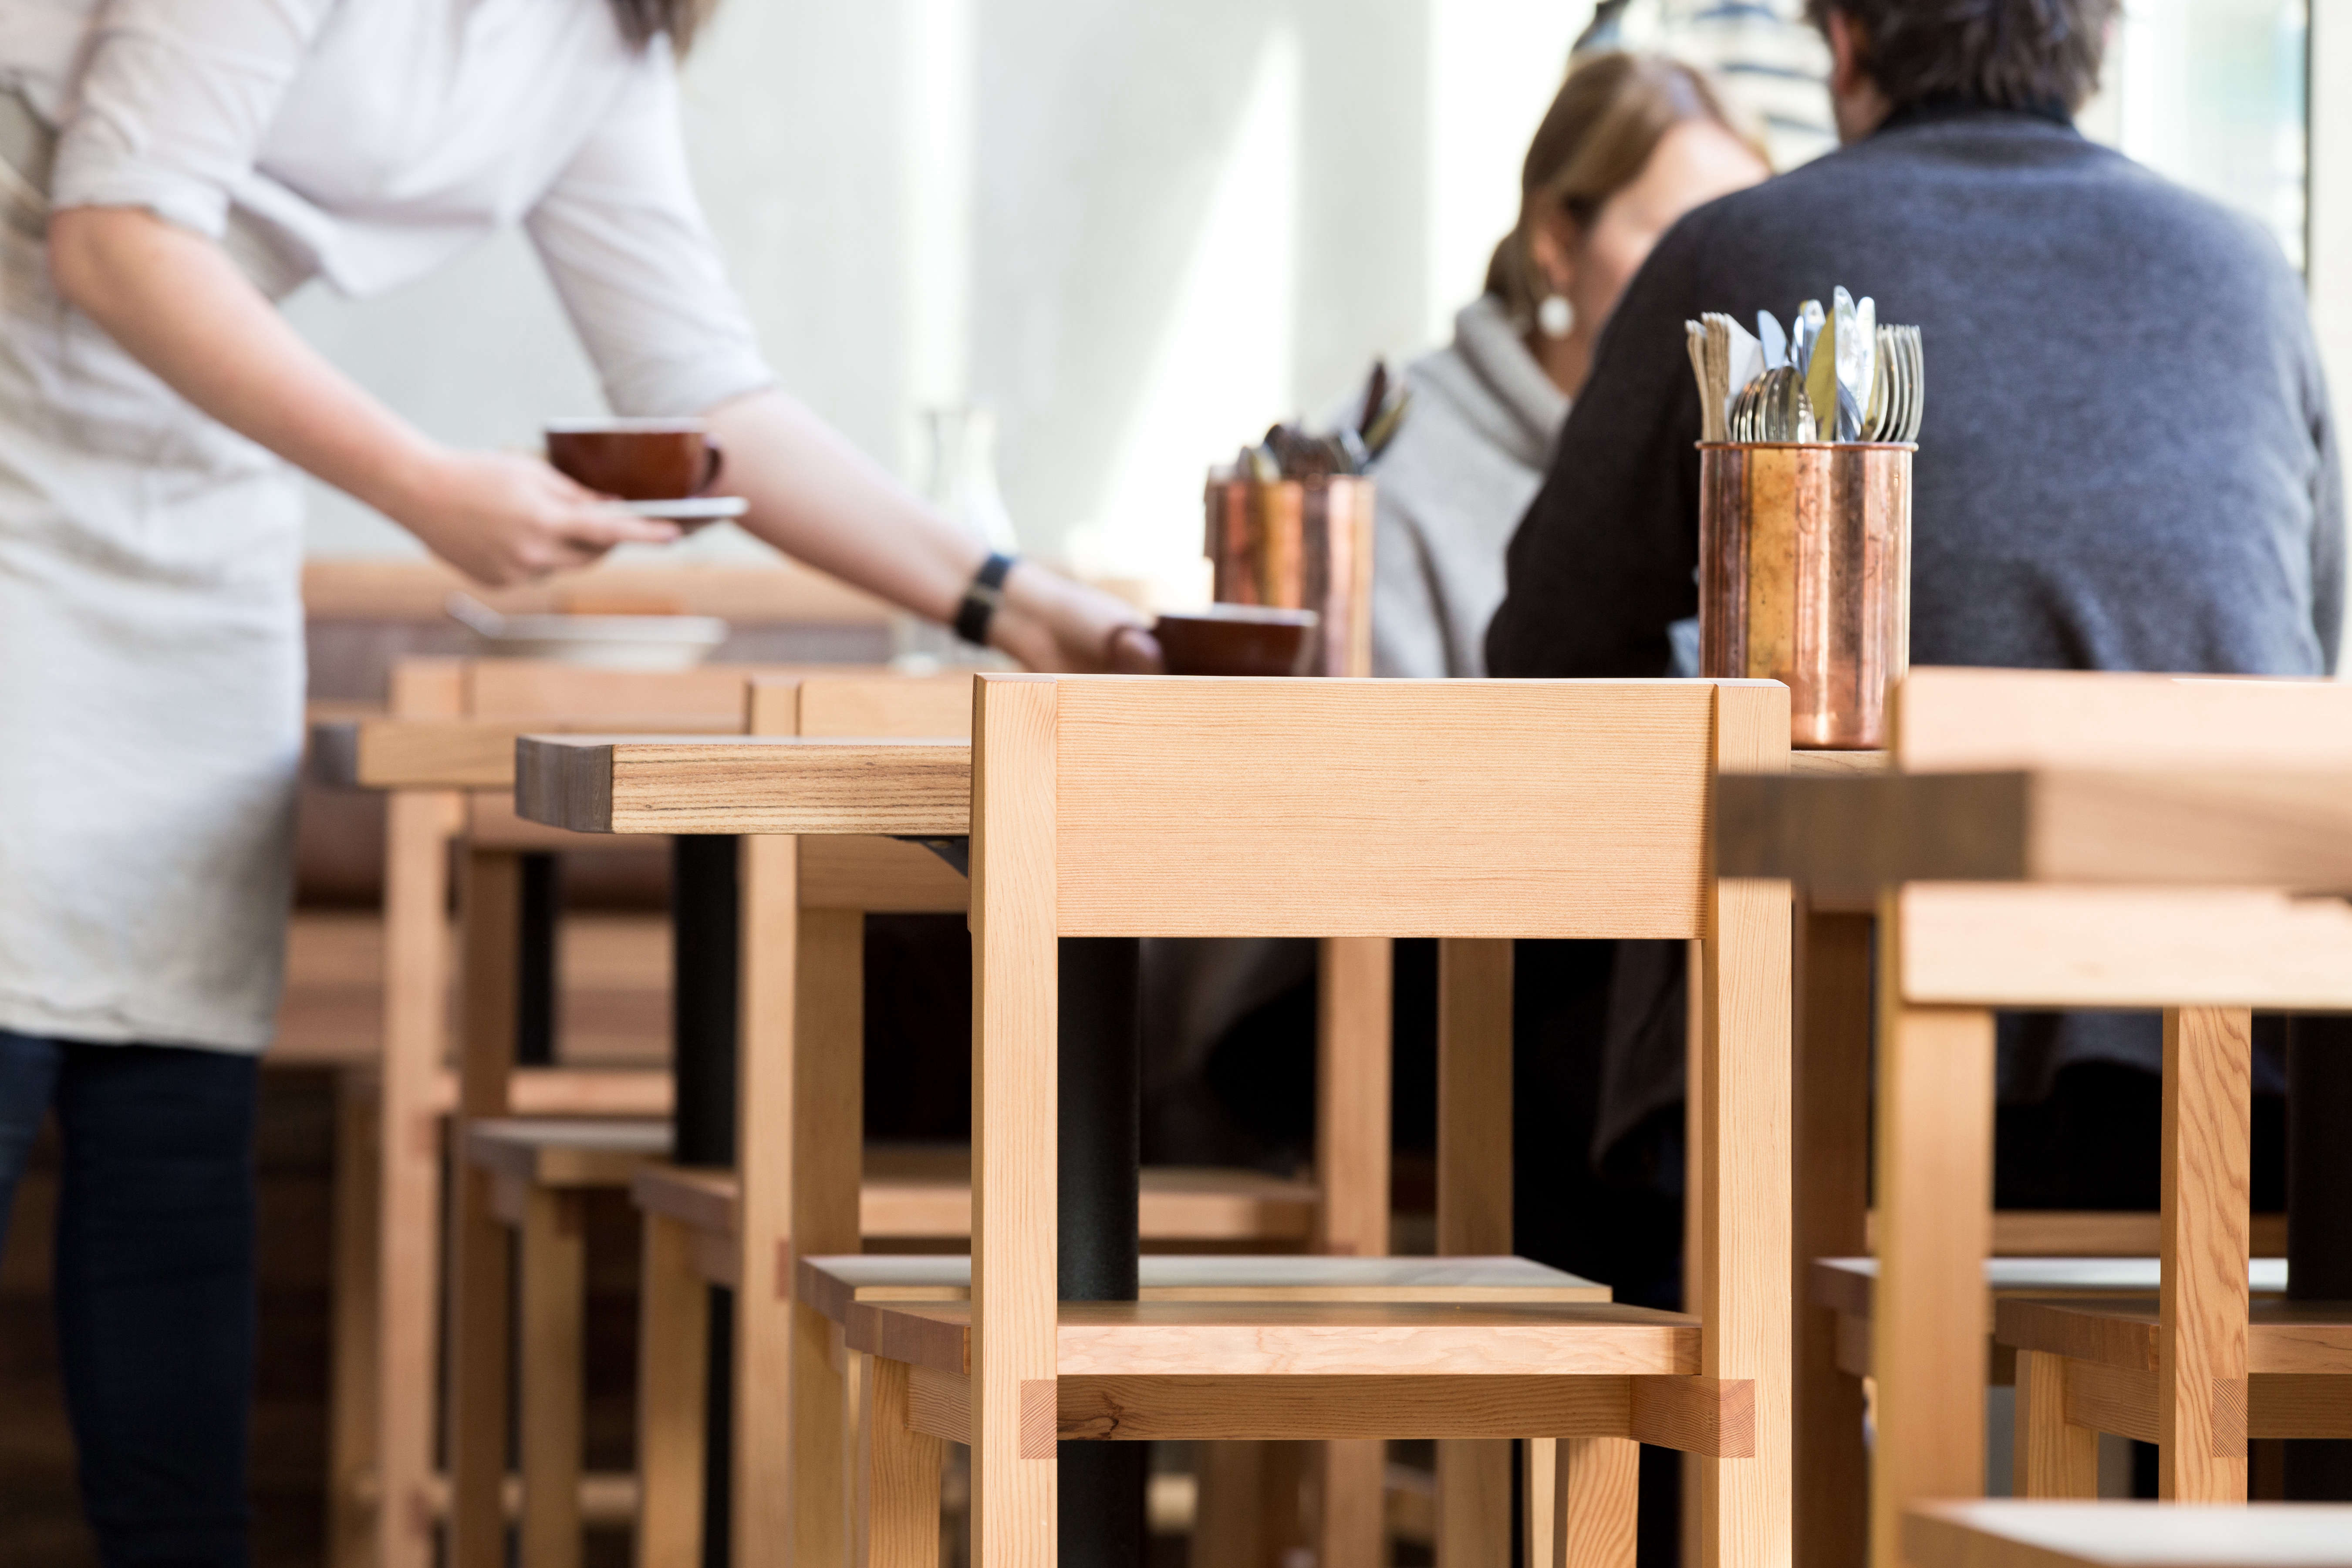 Dowel Dining Chairs outfit Little Gem in San Francisco, a new restaurant from three alum chefs of Thomas Keller kitchens.